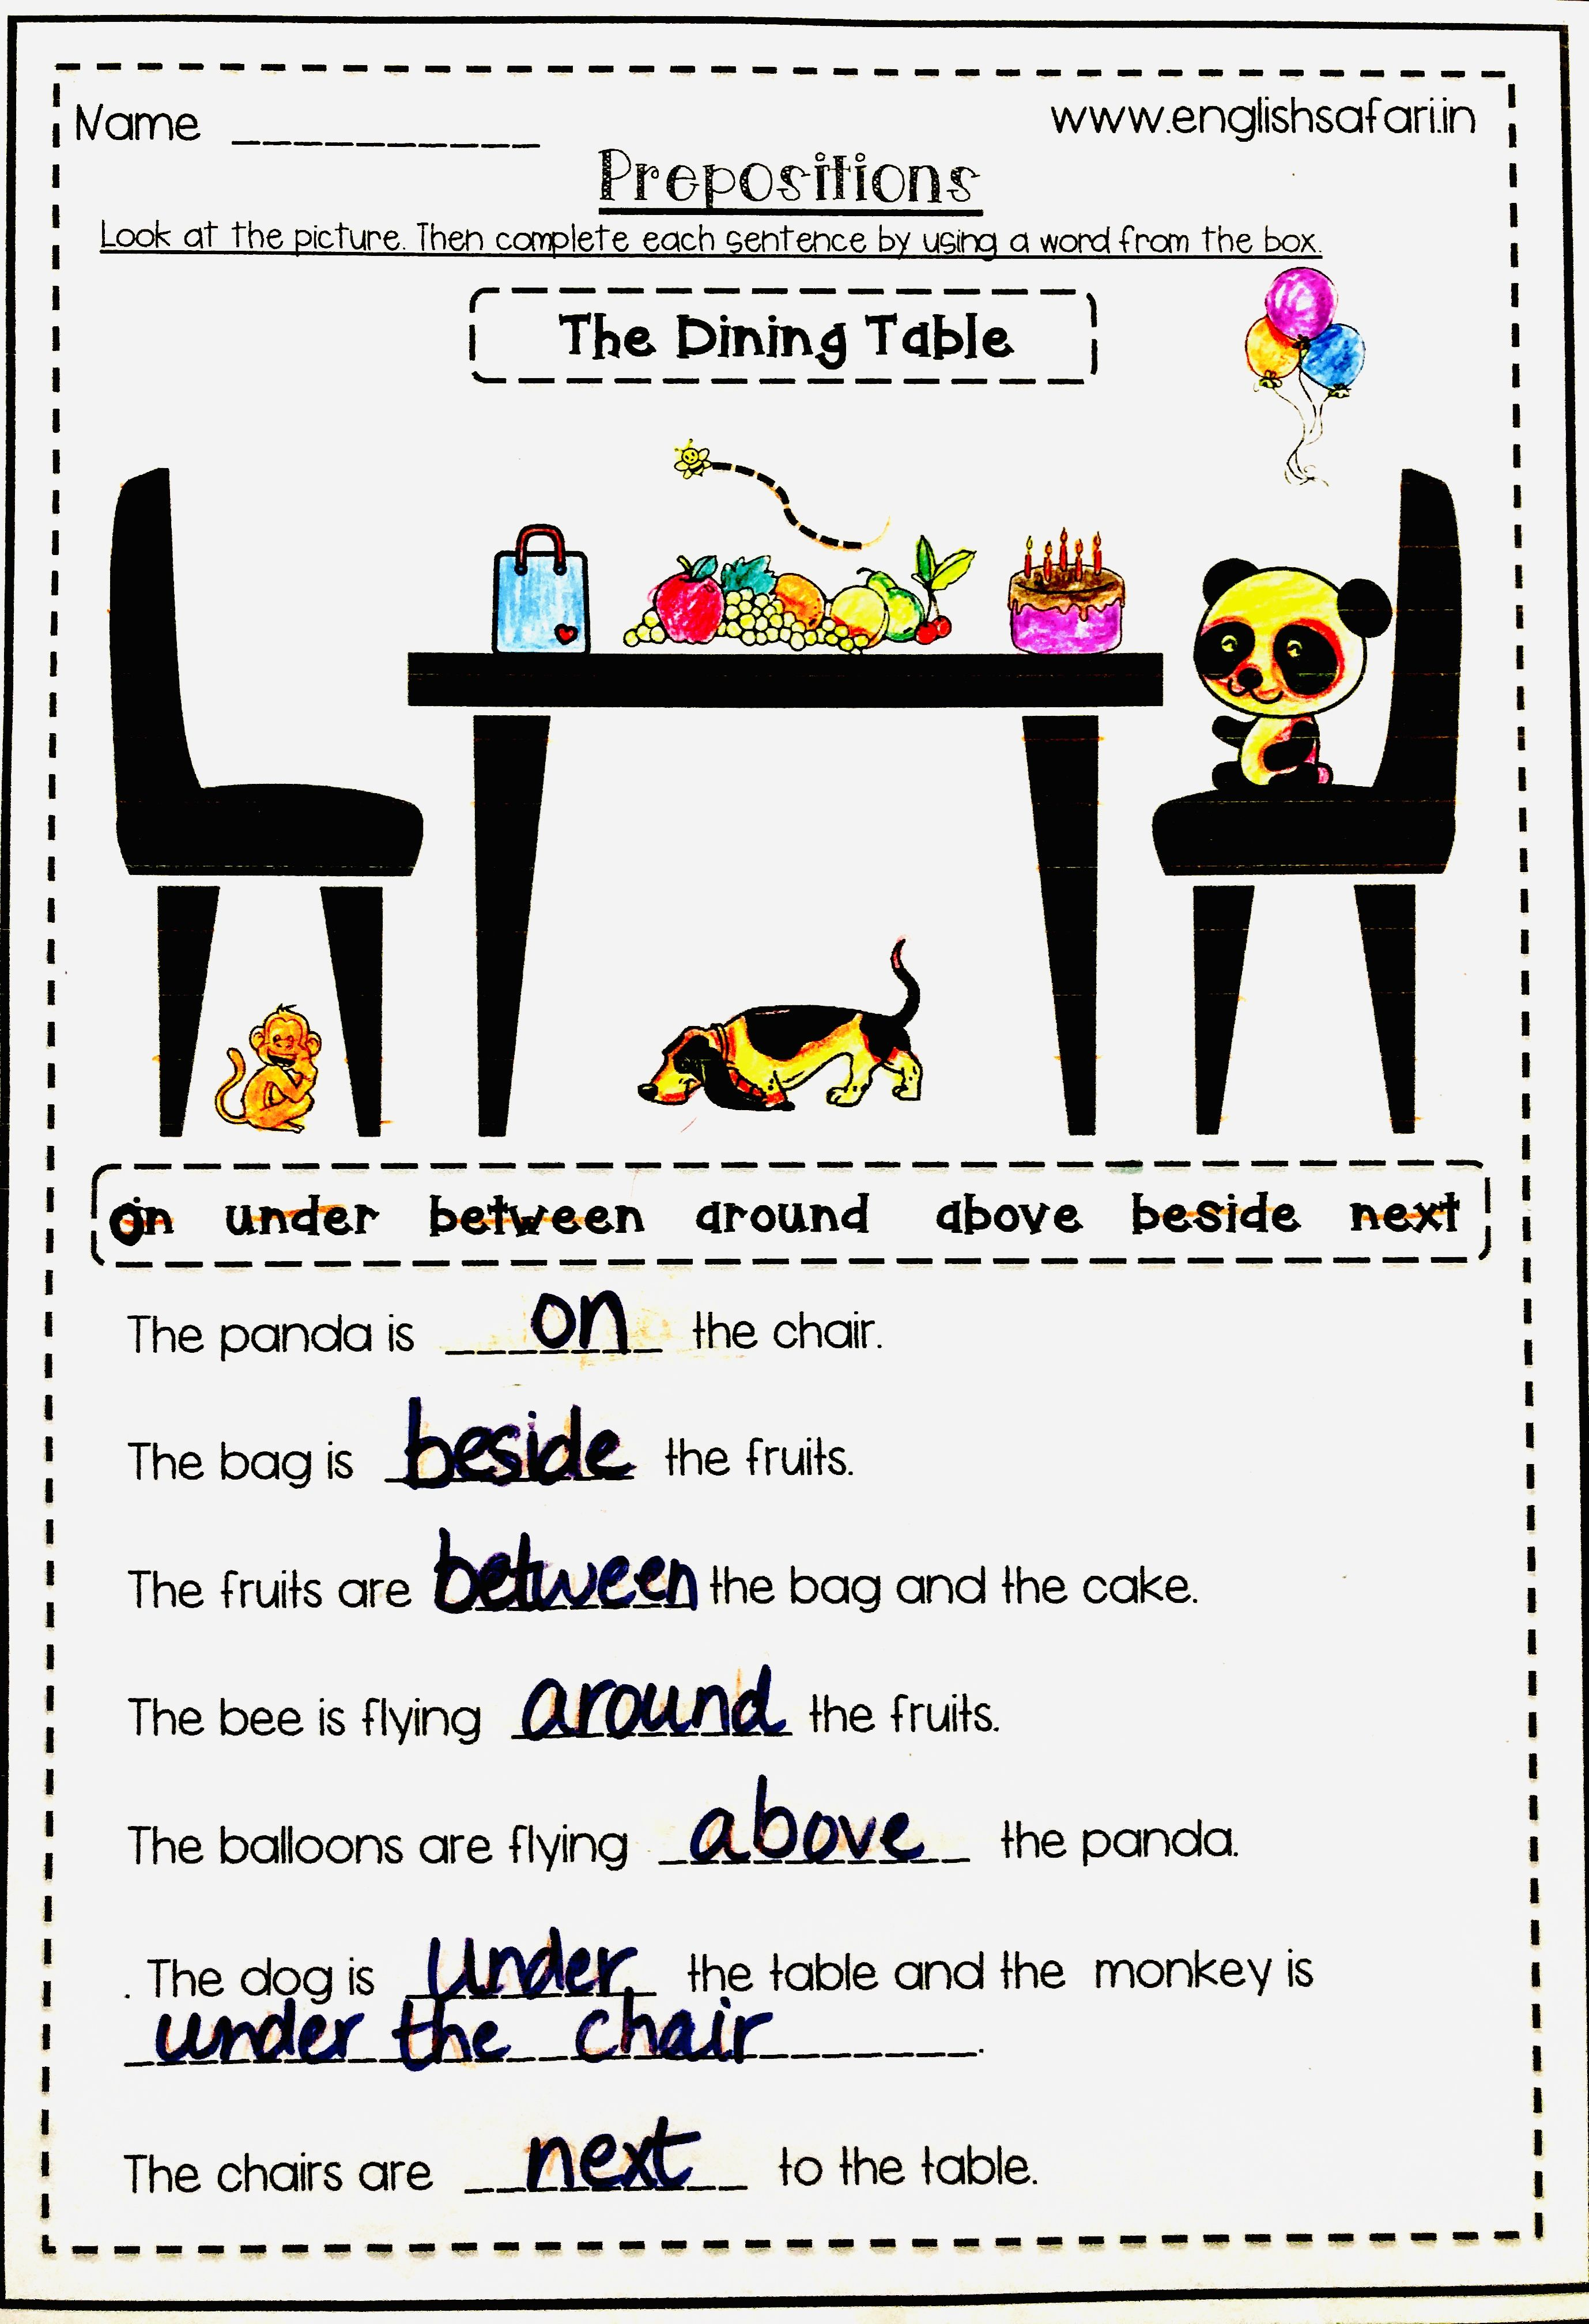 medium resolution of Preposition Worksheet For G1   Printable Worksheets and Activities for  Teachers